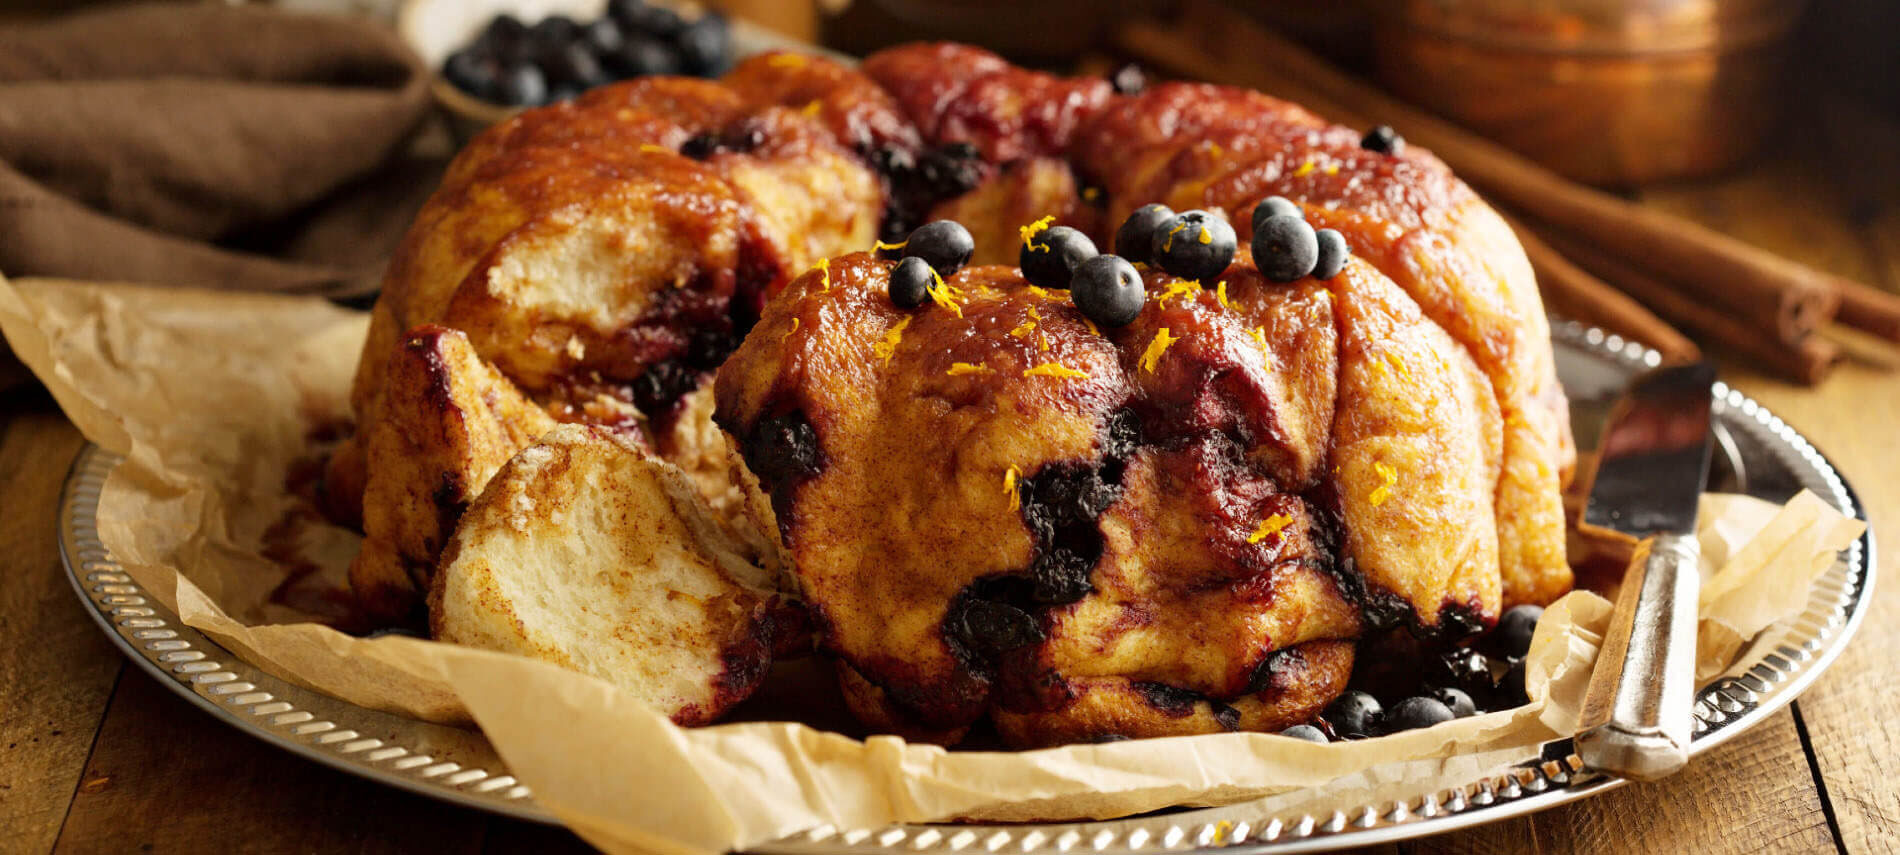 Monkey Bread with Blueberries and Lemon Zest